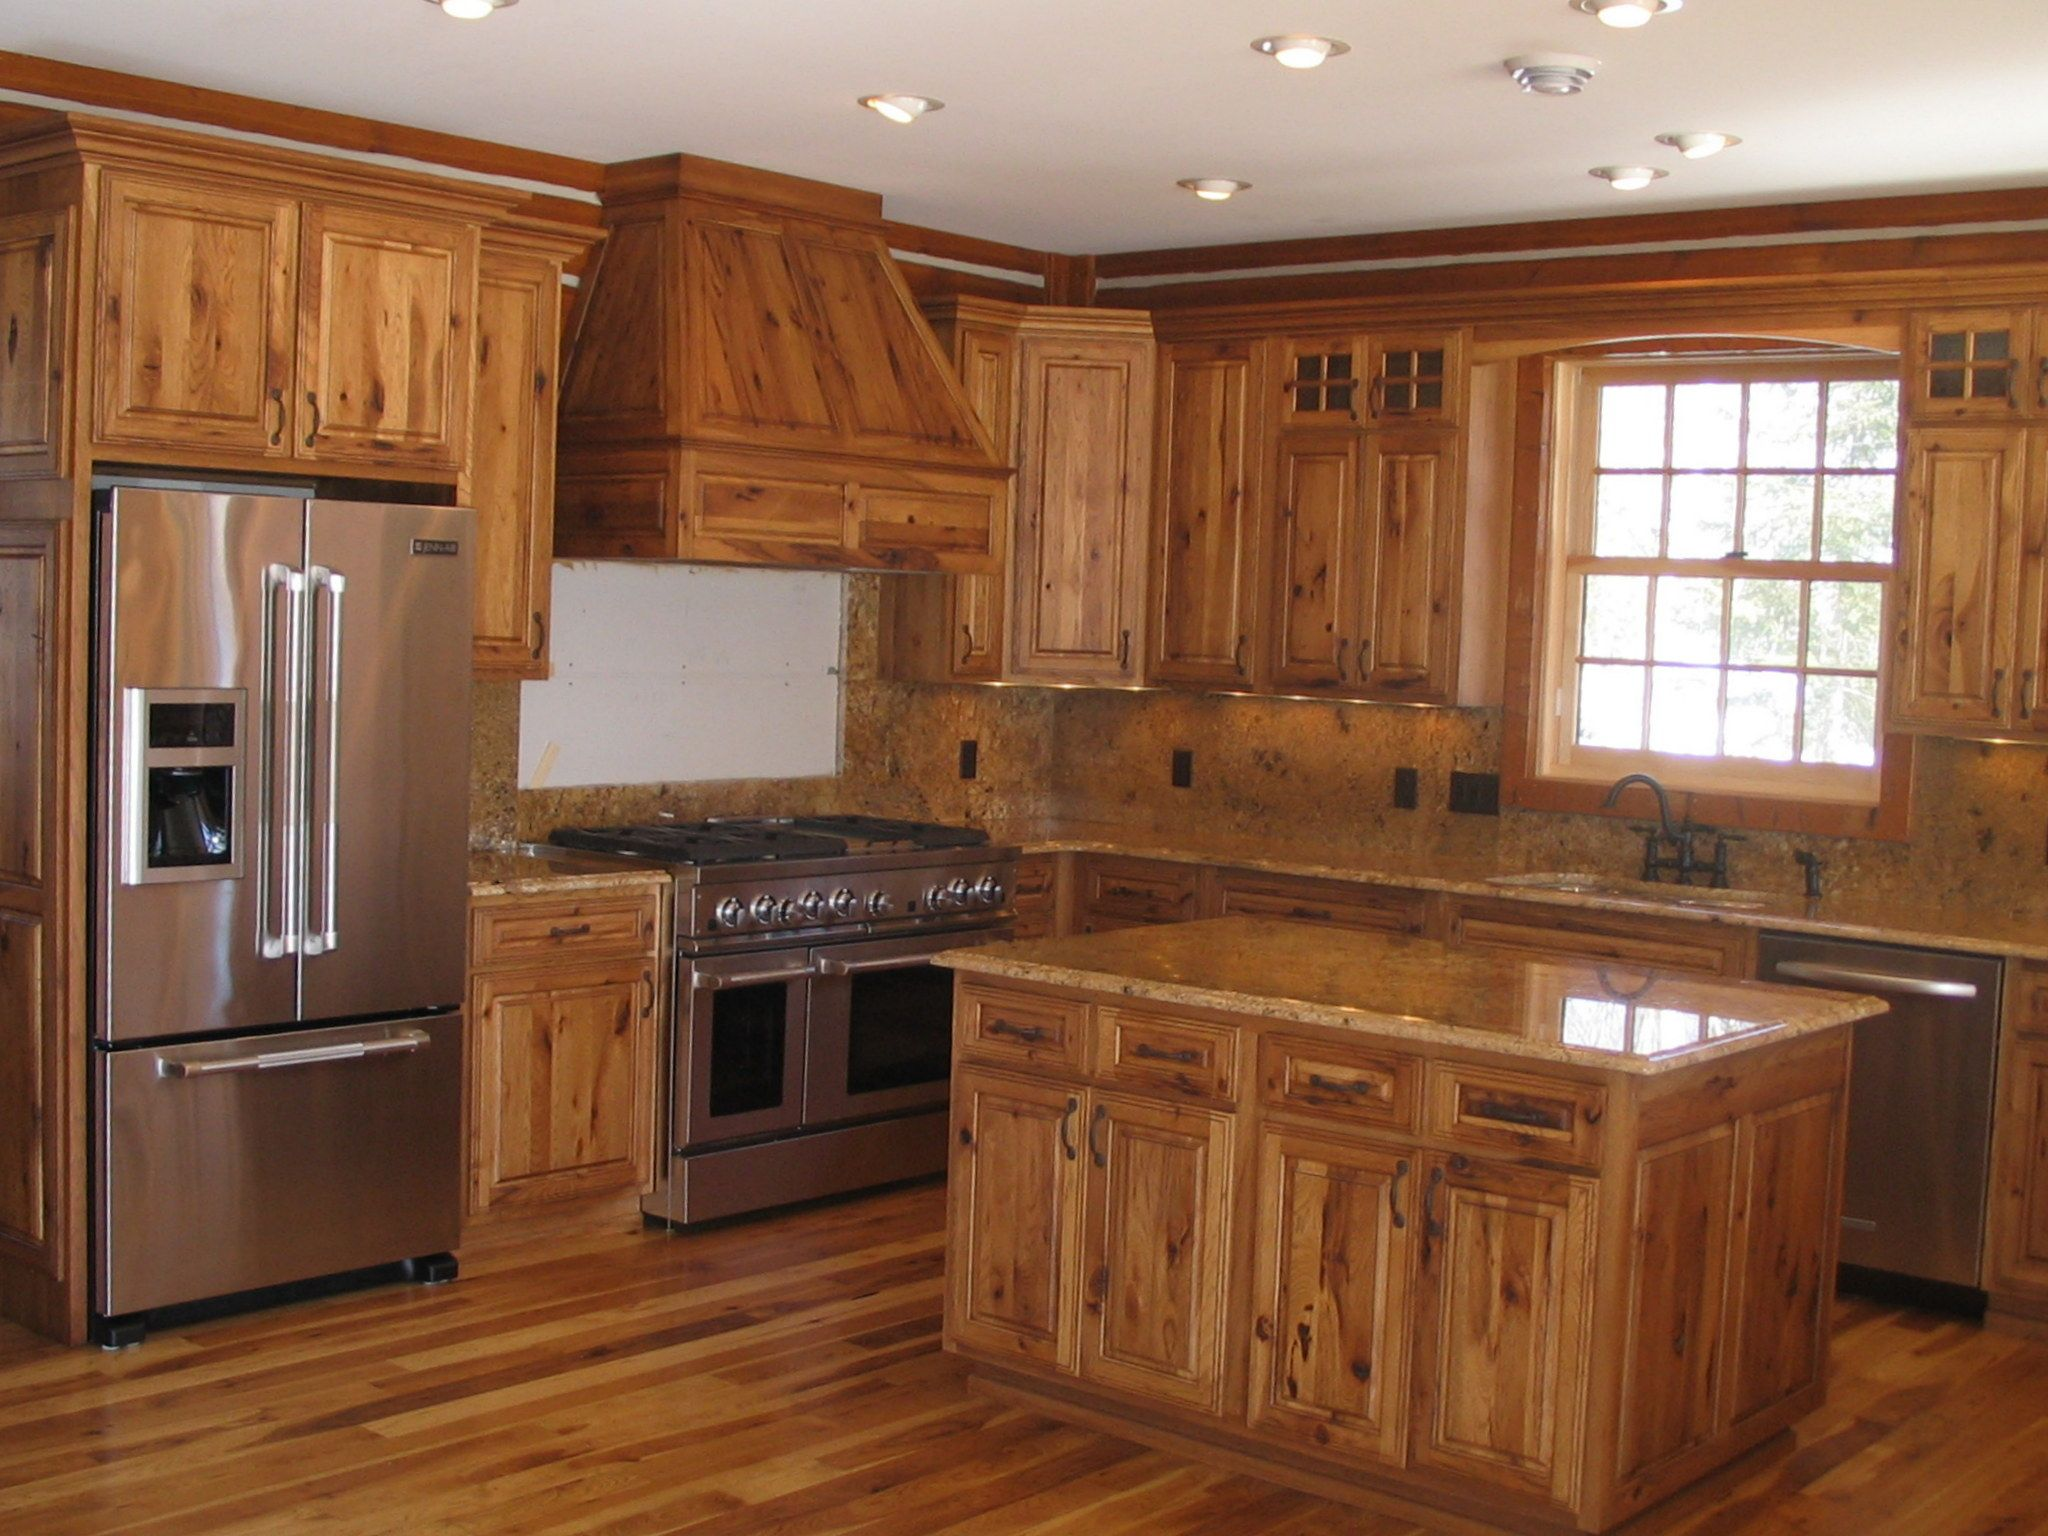 Holiday Kitchens Winchester Square Door Style Style Rustic Room Kitchen Material C Kitchen Cabinet Inspiration Rustic Kitchen Unfinished Kitchen Cabinets